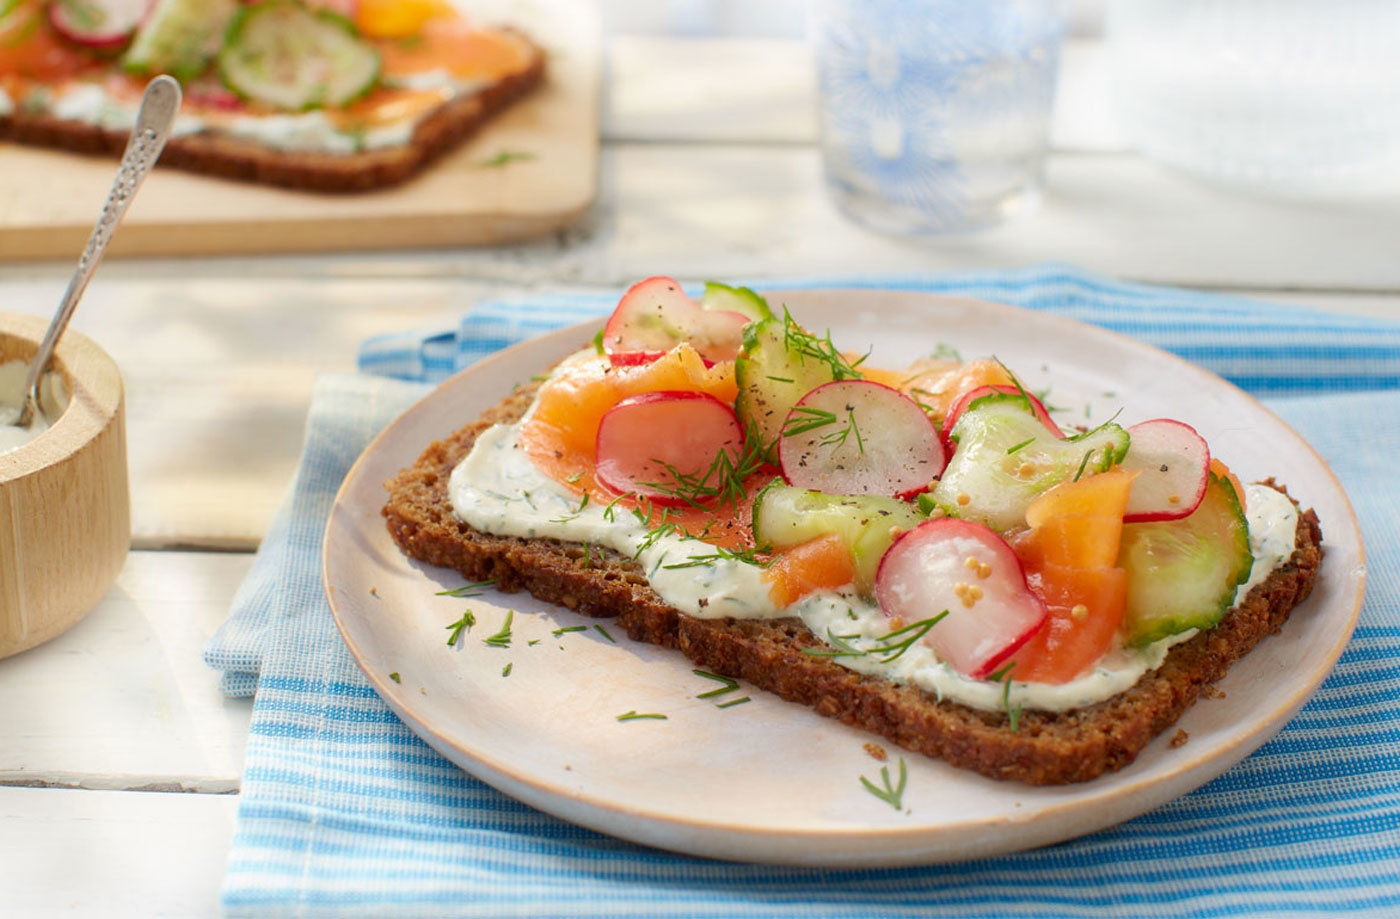 Smoked salmon and rye bread with pickled radishes and cucumber